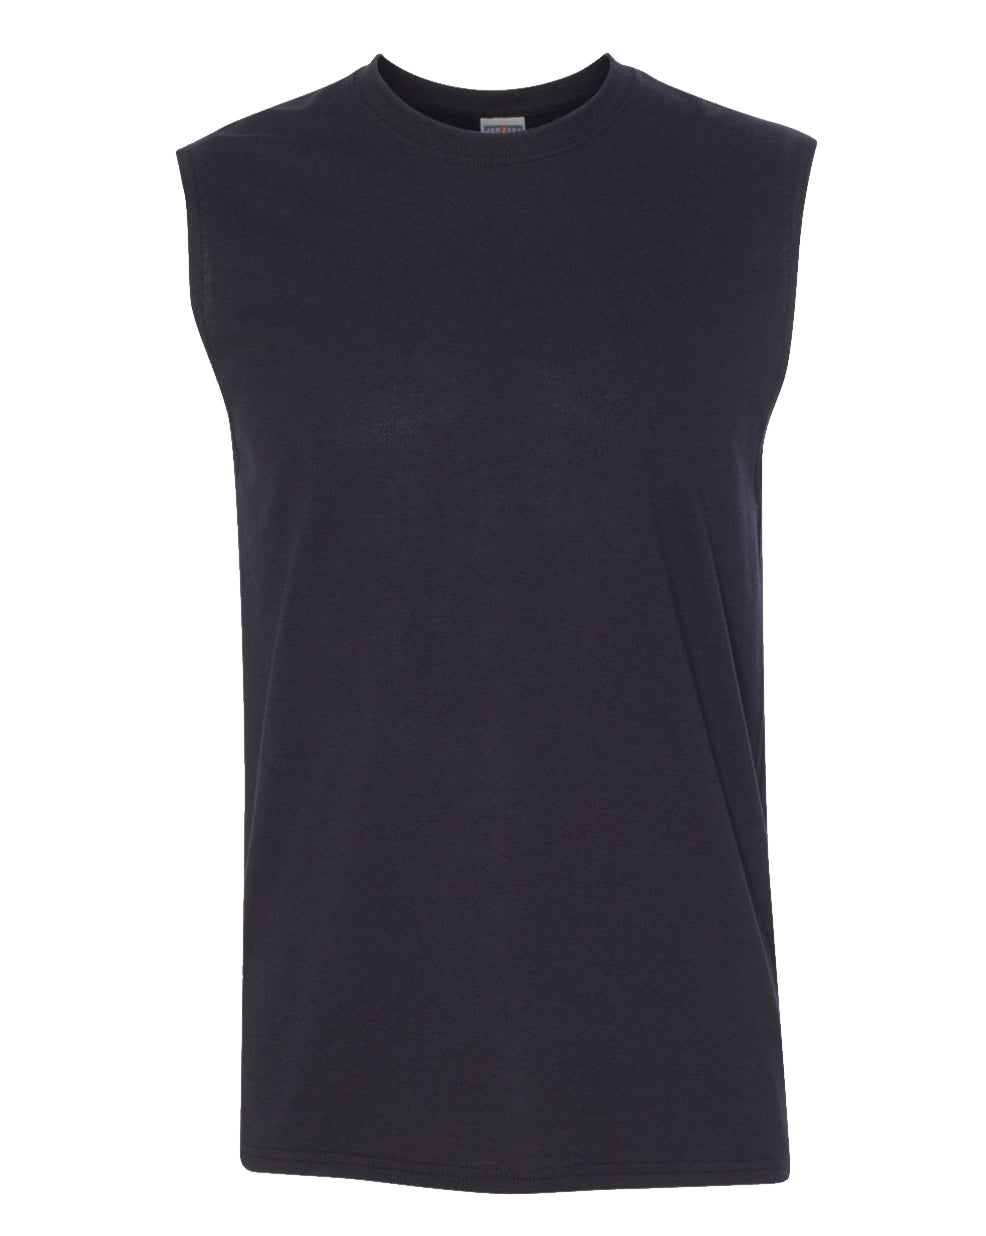 black men's sleeveless t-shirt